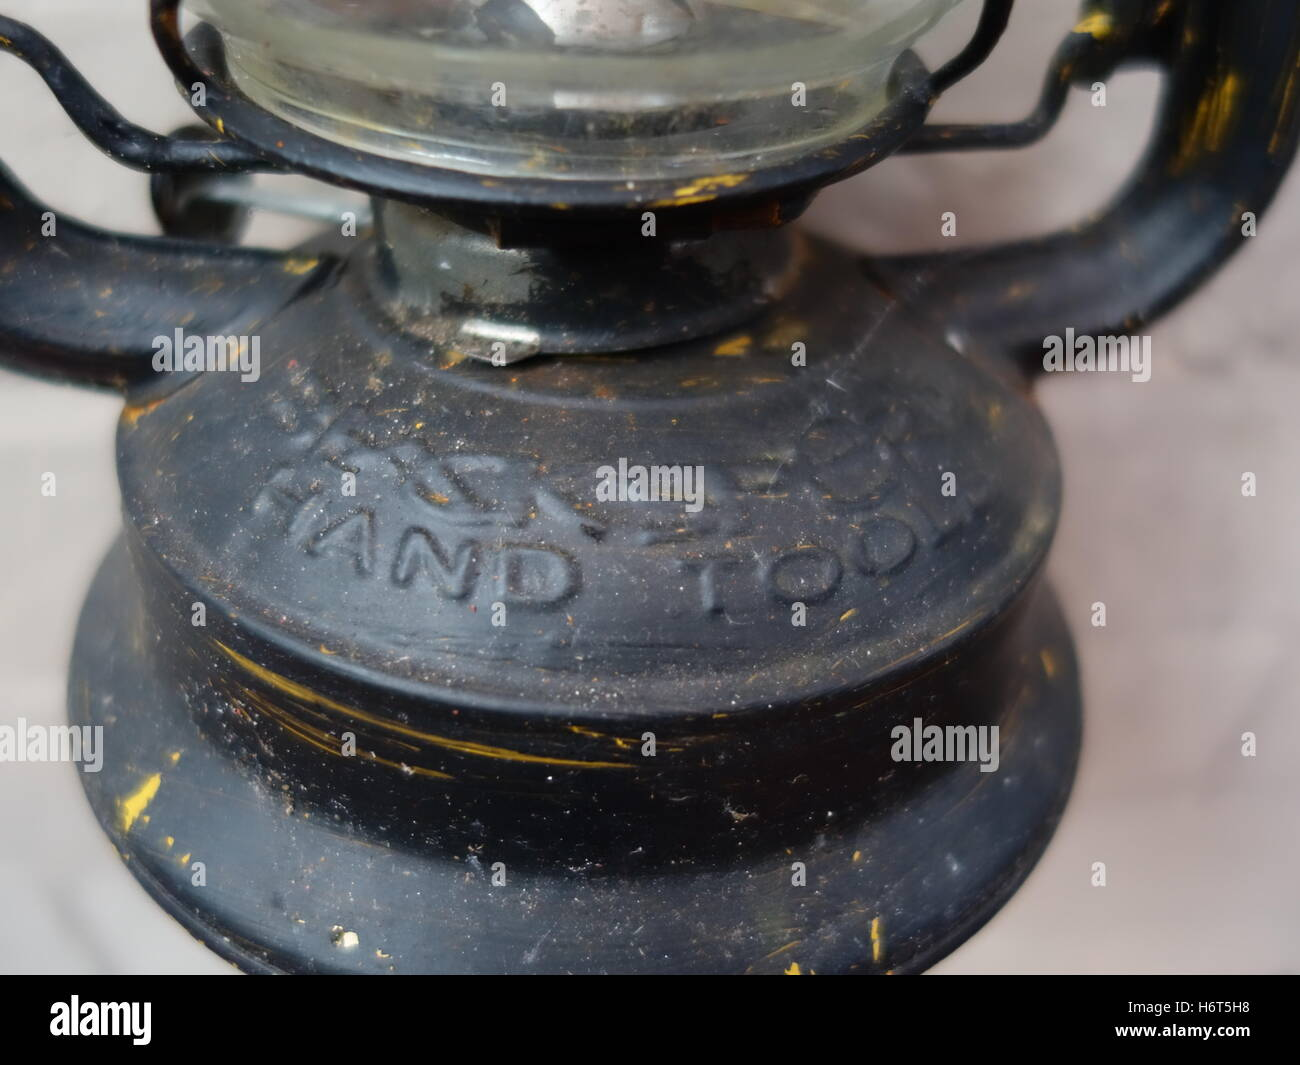 The bottom of an old lamp labeled 'hand tool' - Stock Image